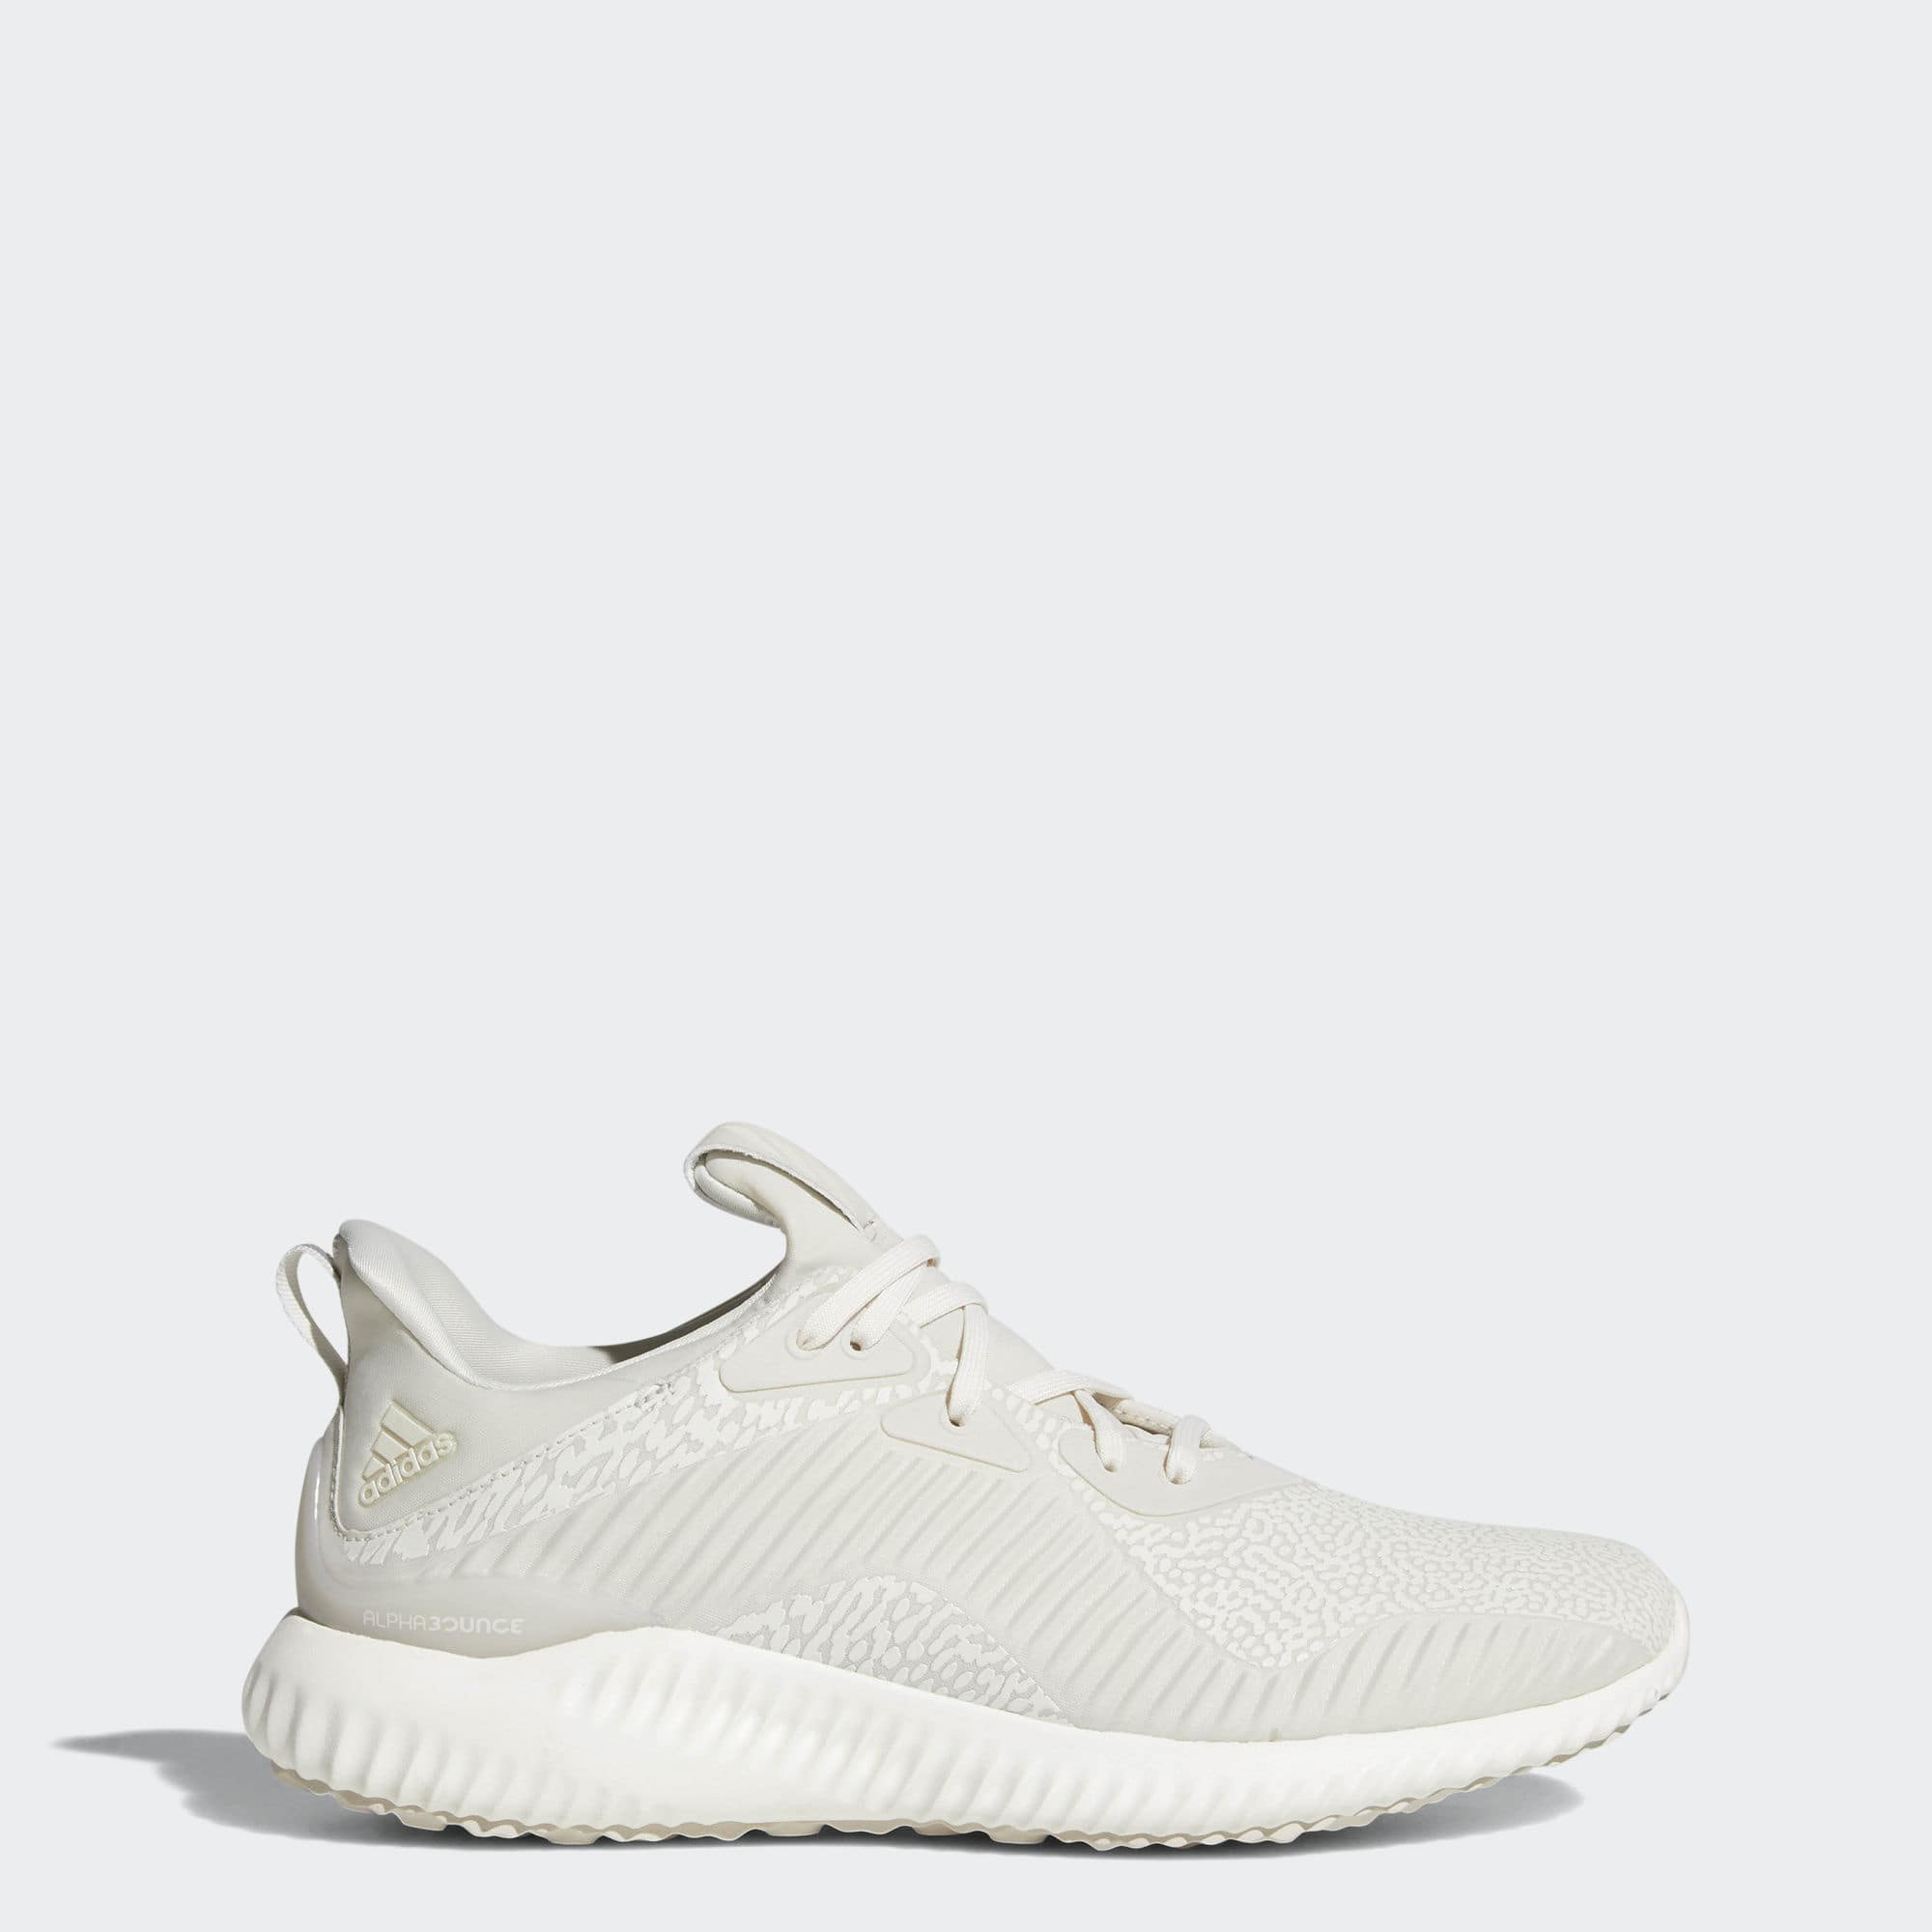 796fa5ba9 adidas Men s Alphabounce Reflective HPC AMS Shoes - Slickdeals.net